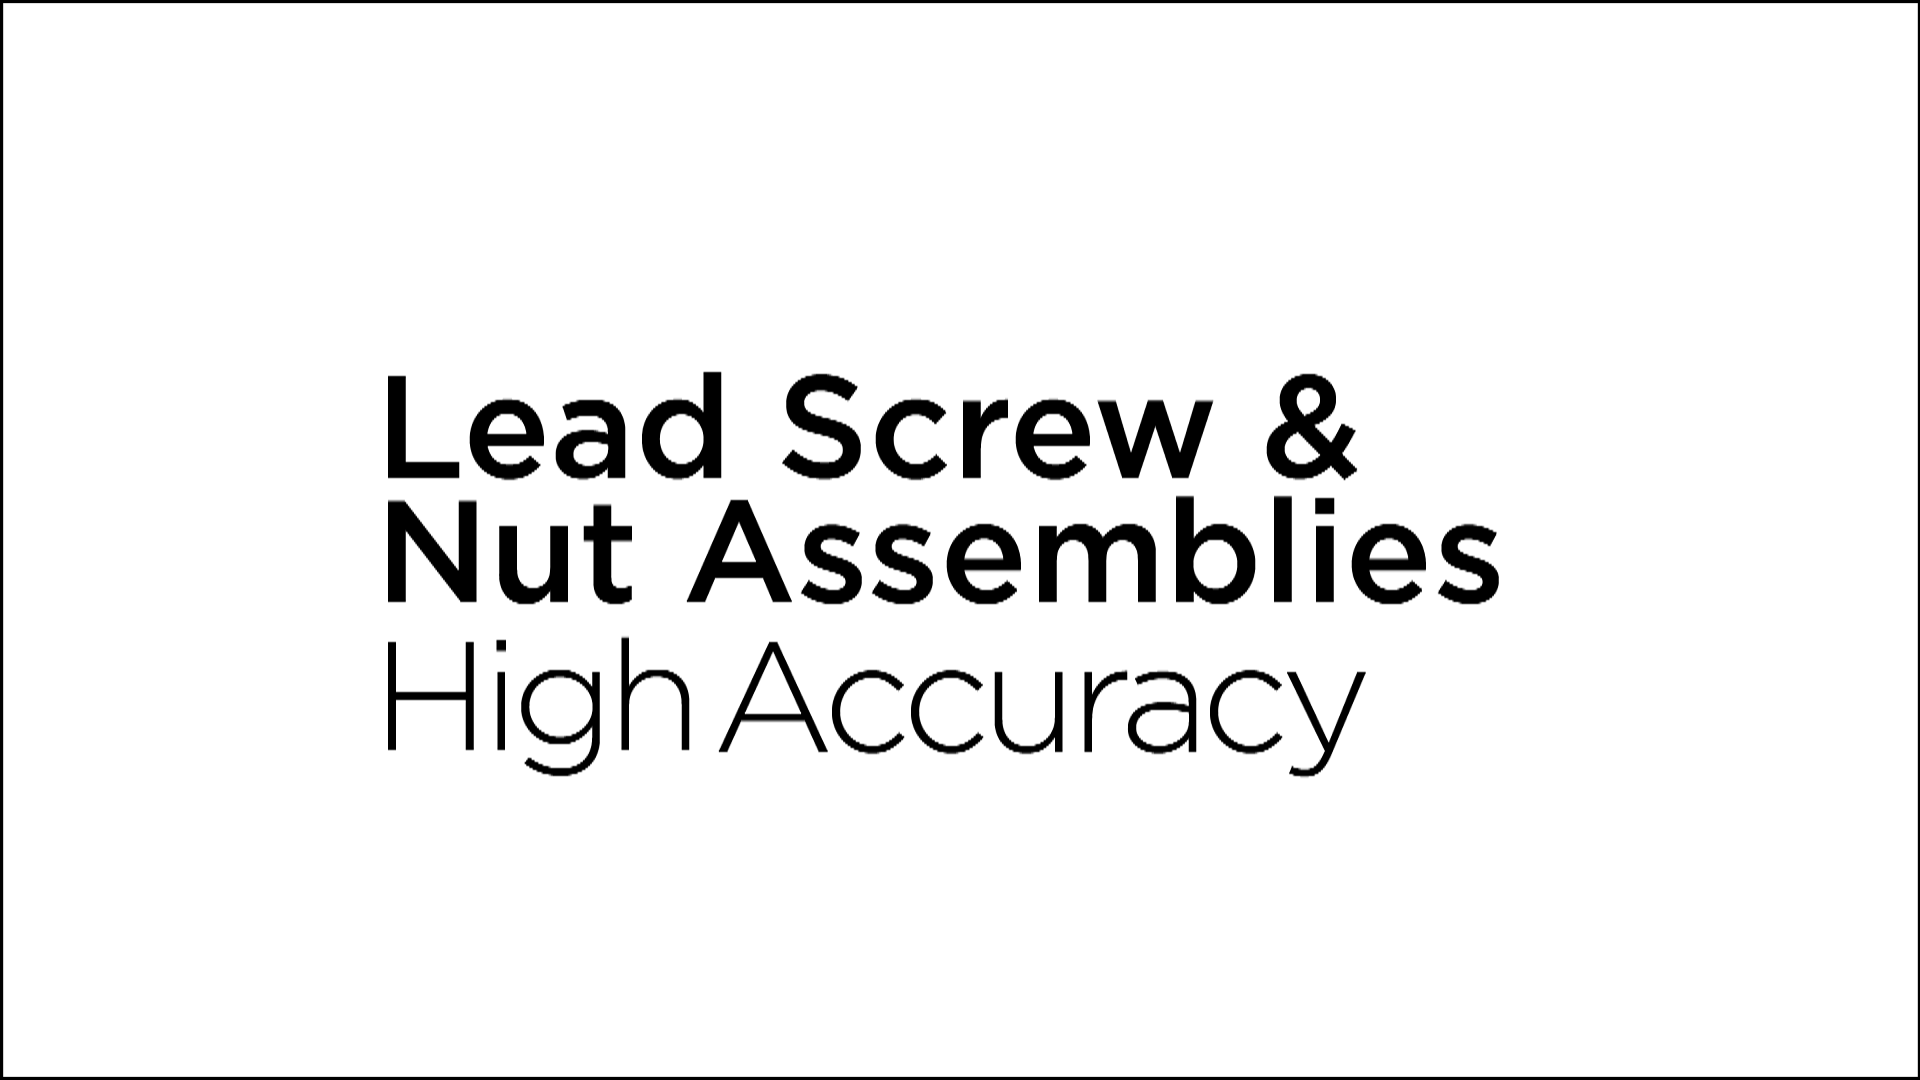 Haydon Kerk Lead Screw & Nut Assemblies Video